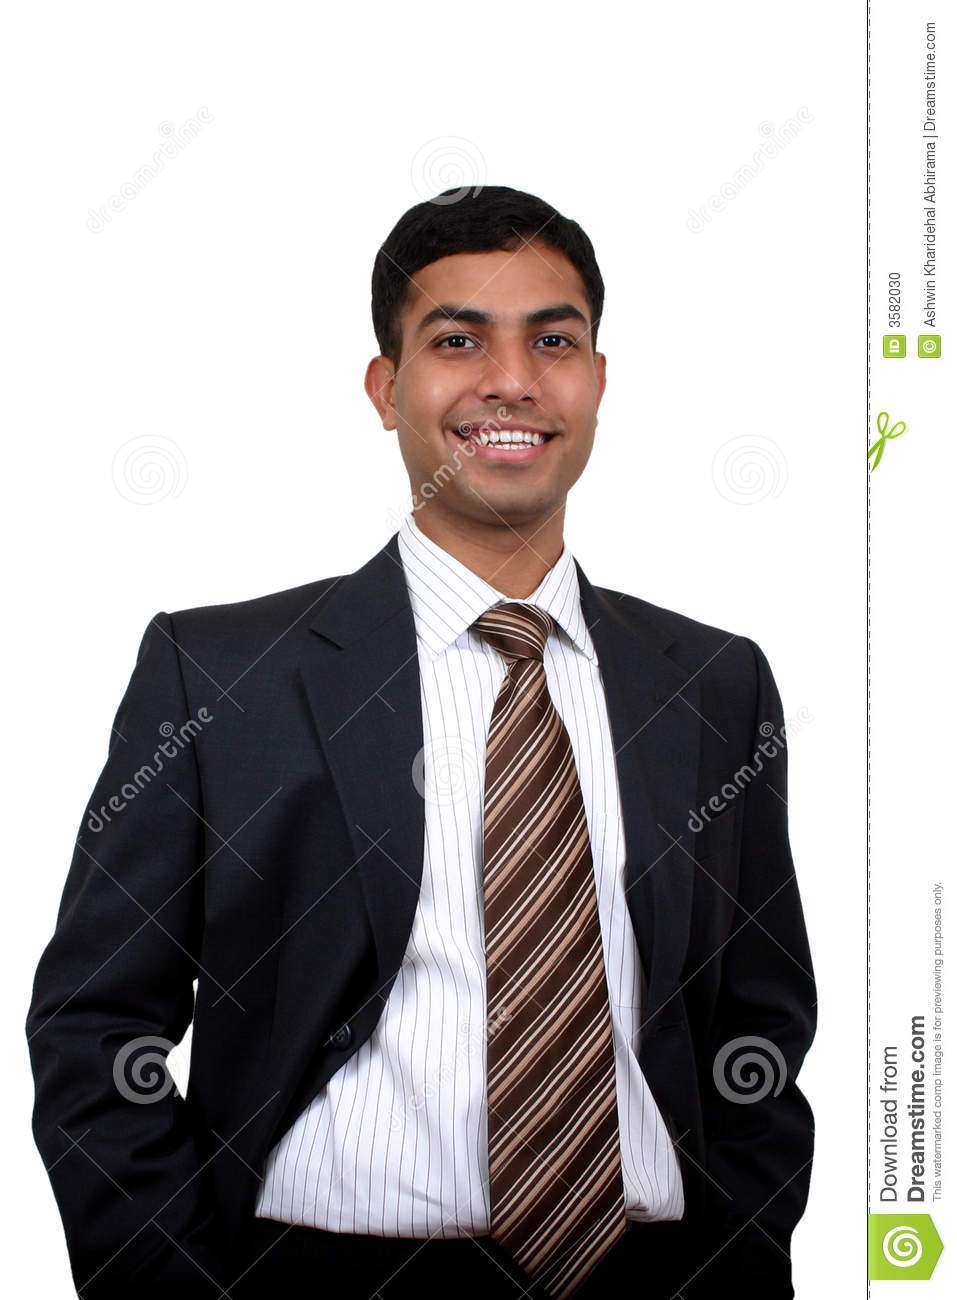 indian-business-man-smiling-3582030.jpg